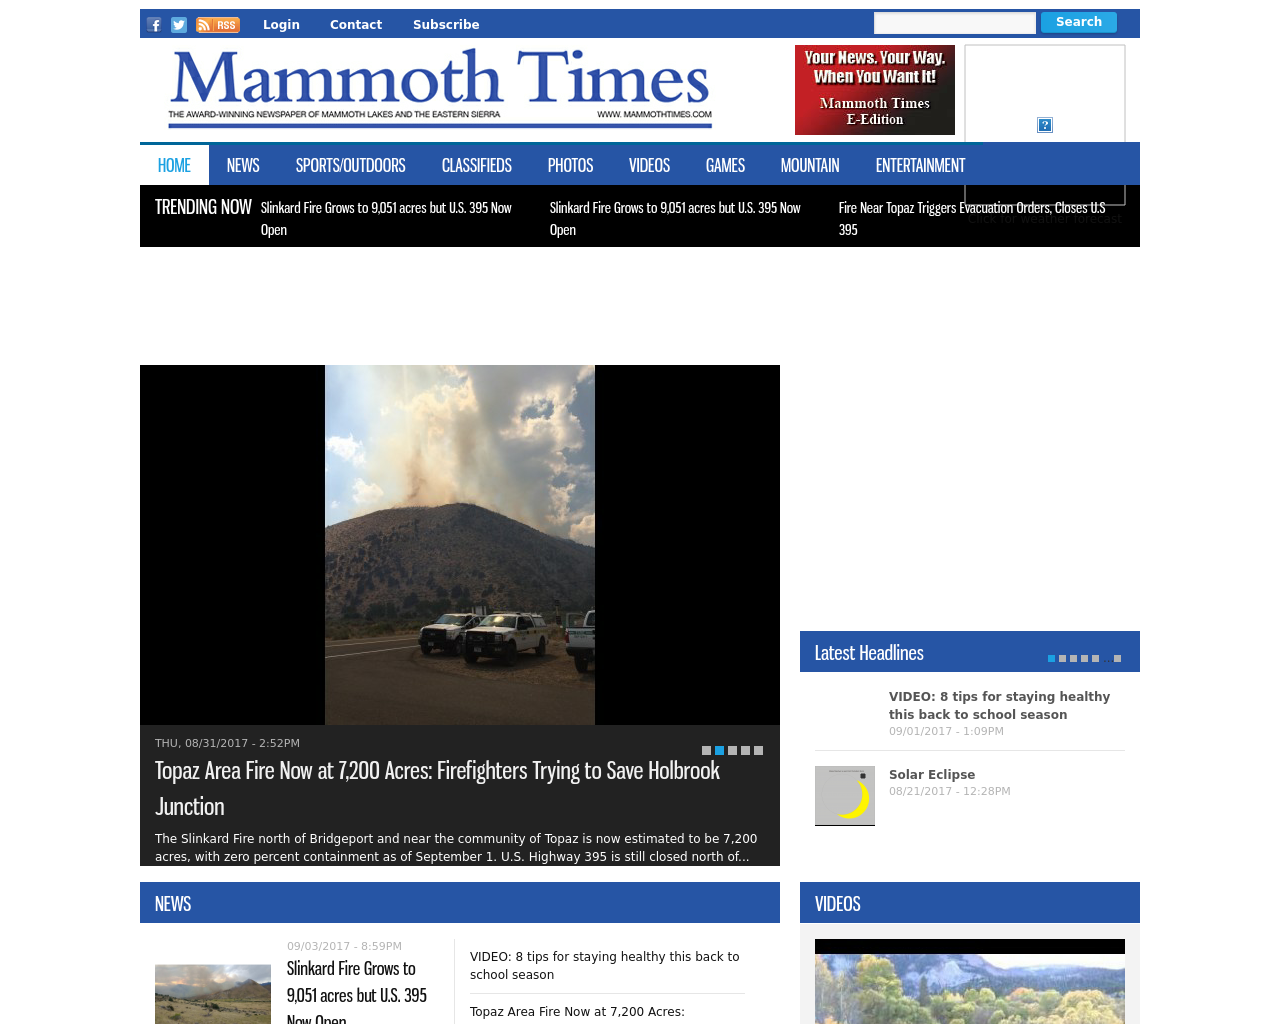 Mammoth-Times-Advertising-Reviews-Pricing